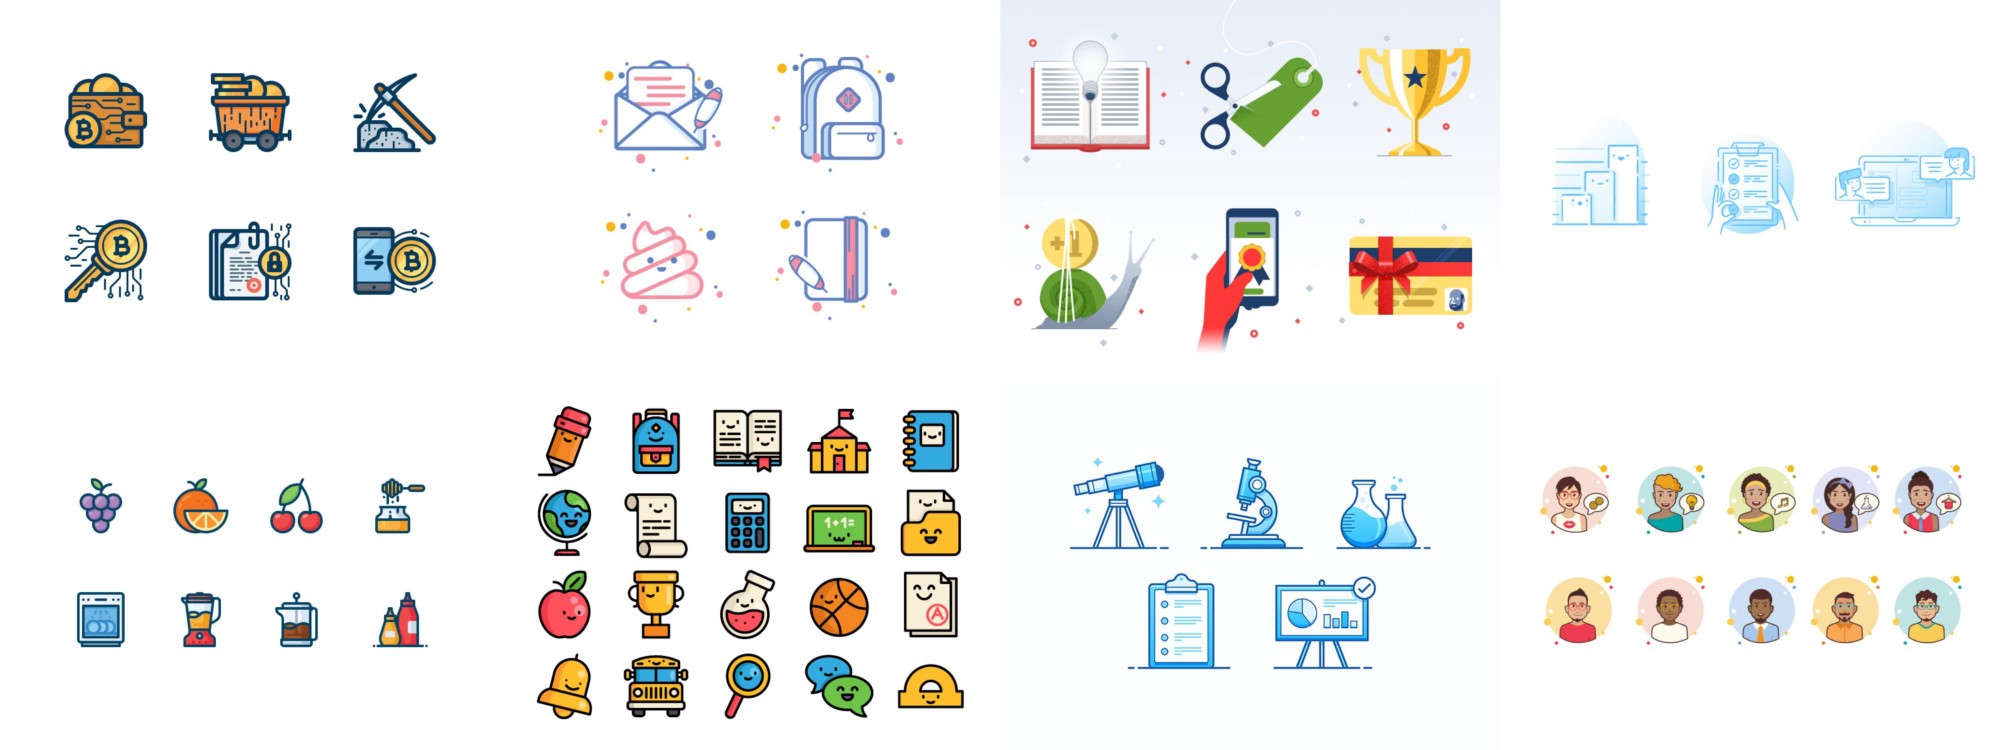 Heres Our Seventeenth Article On Blog Series Icon Design Inspiration This Time Weve Picked 17 Best Shots Which Includes Really Good Icons And